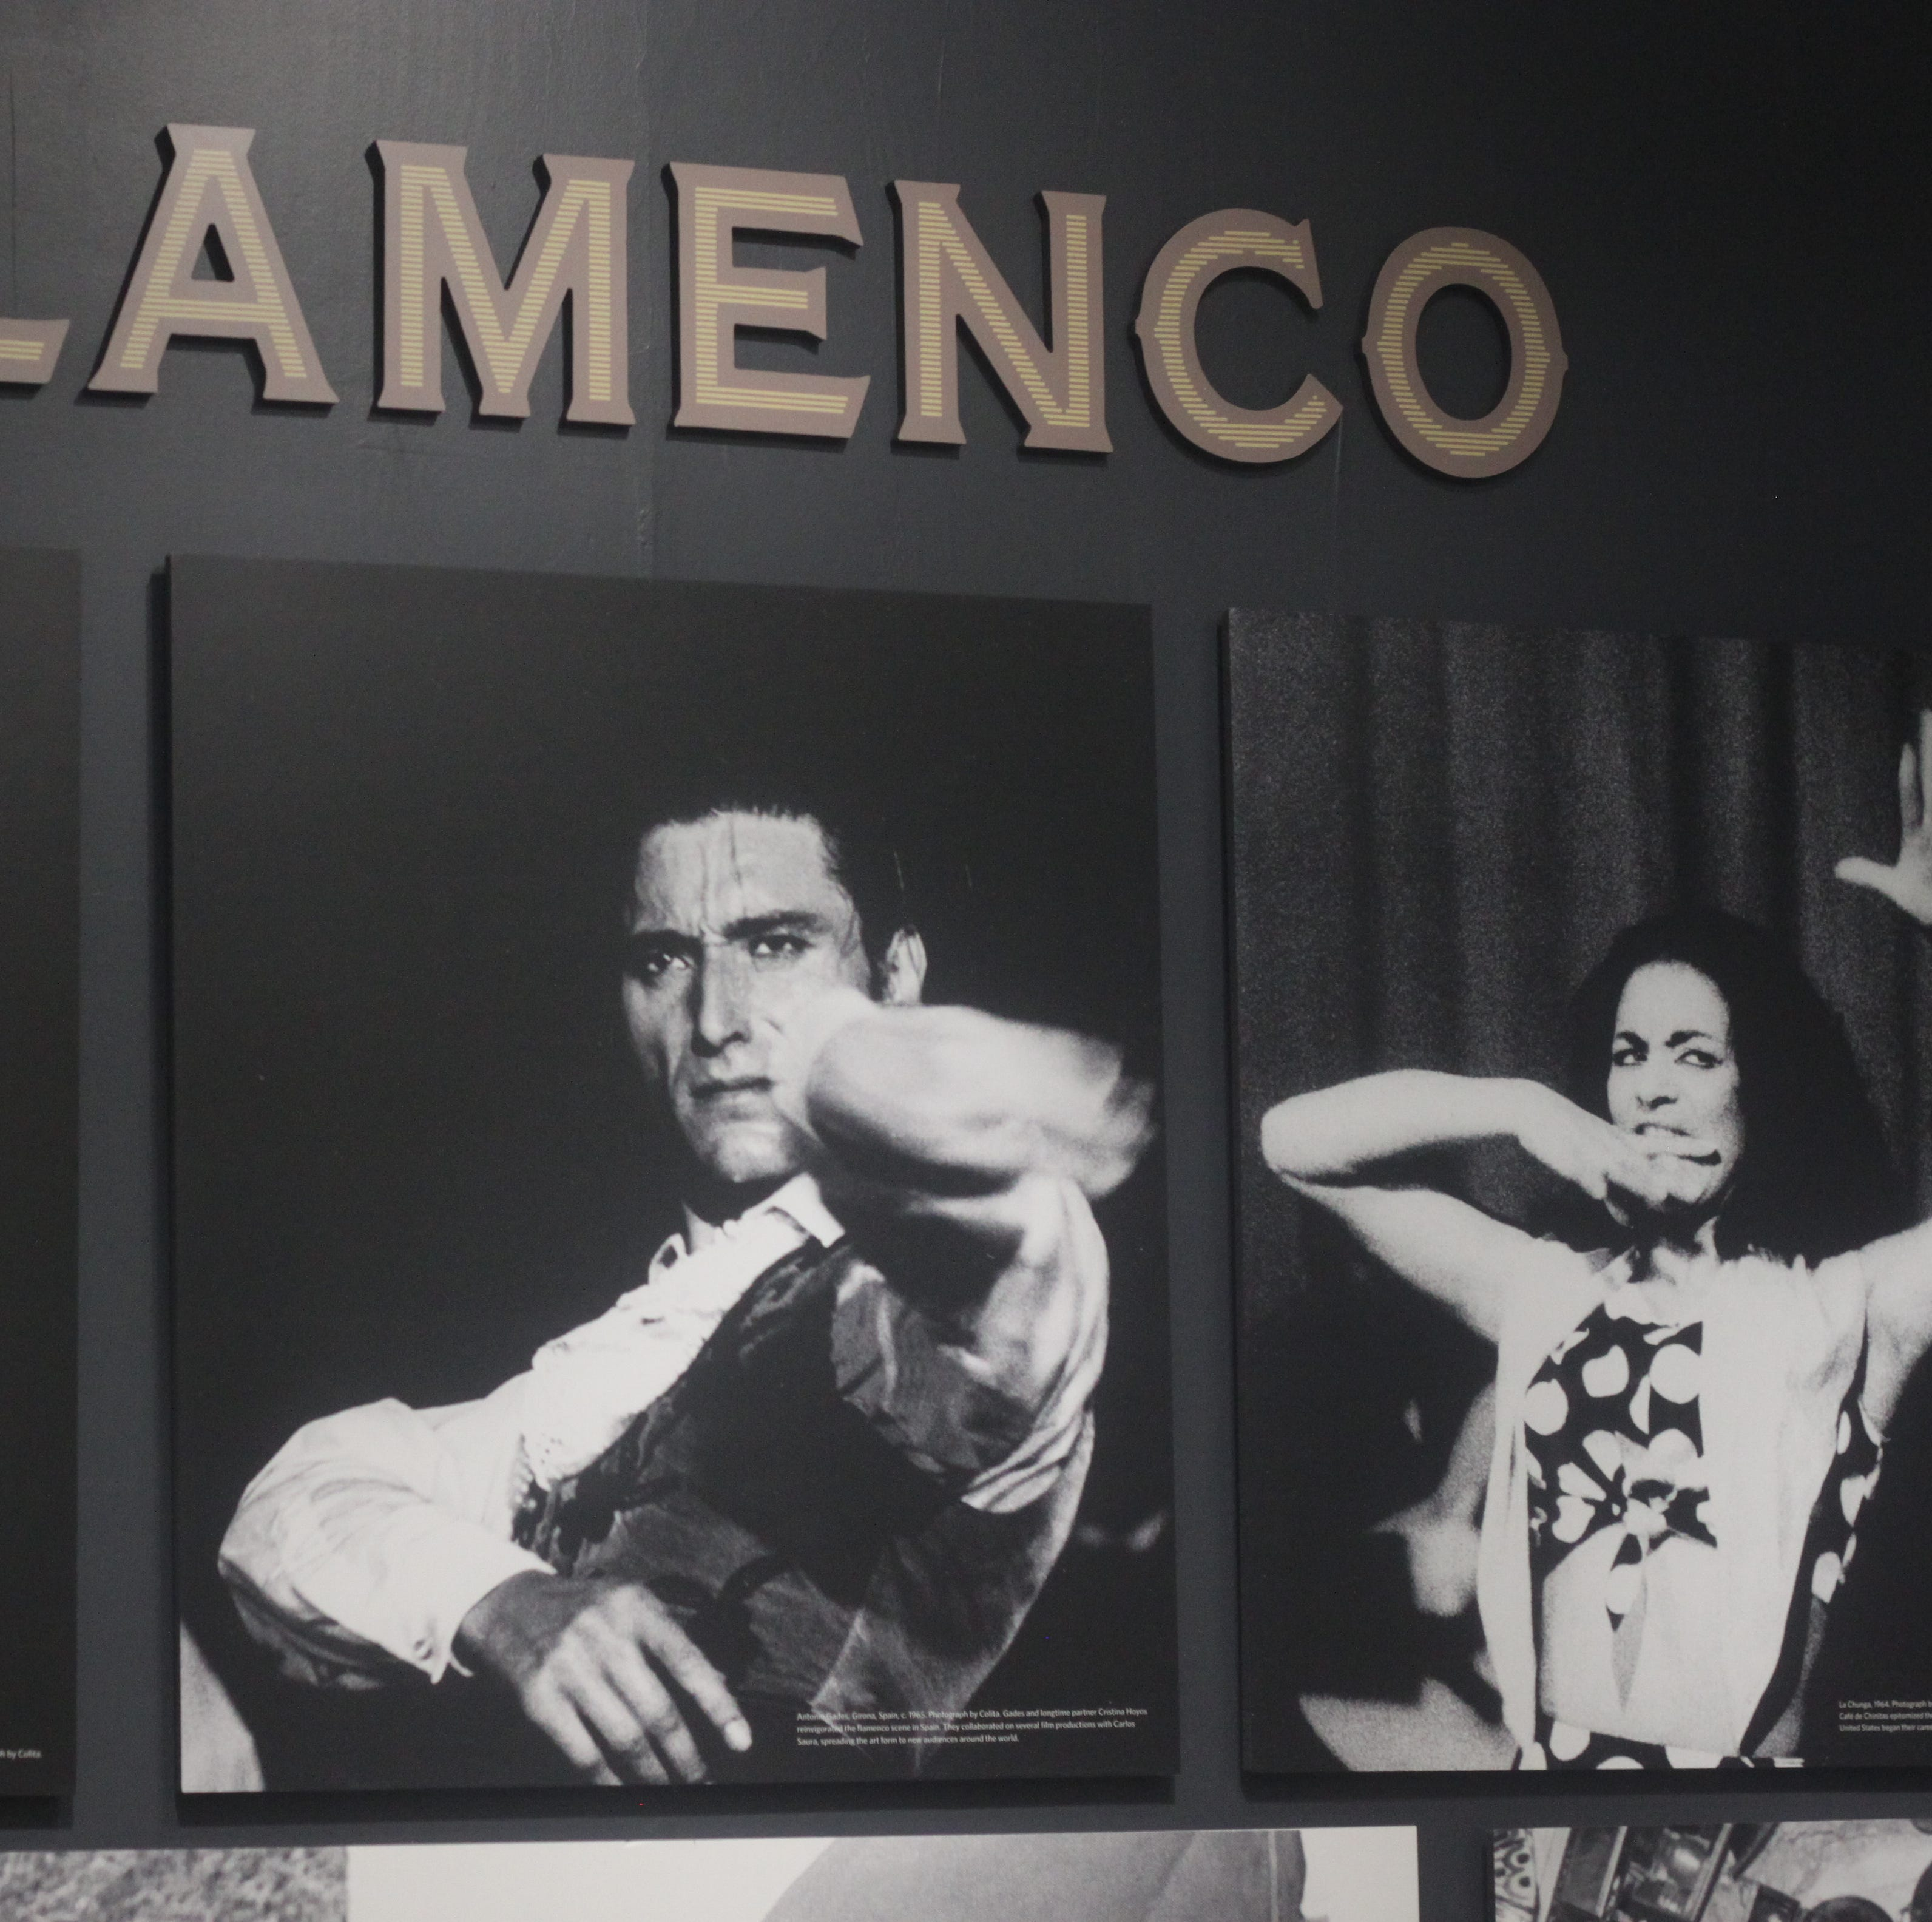 Flamenco culture celebrated at Carlsbad exhibit